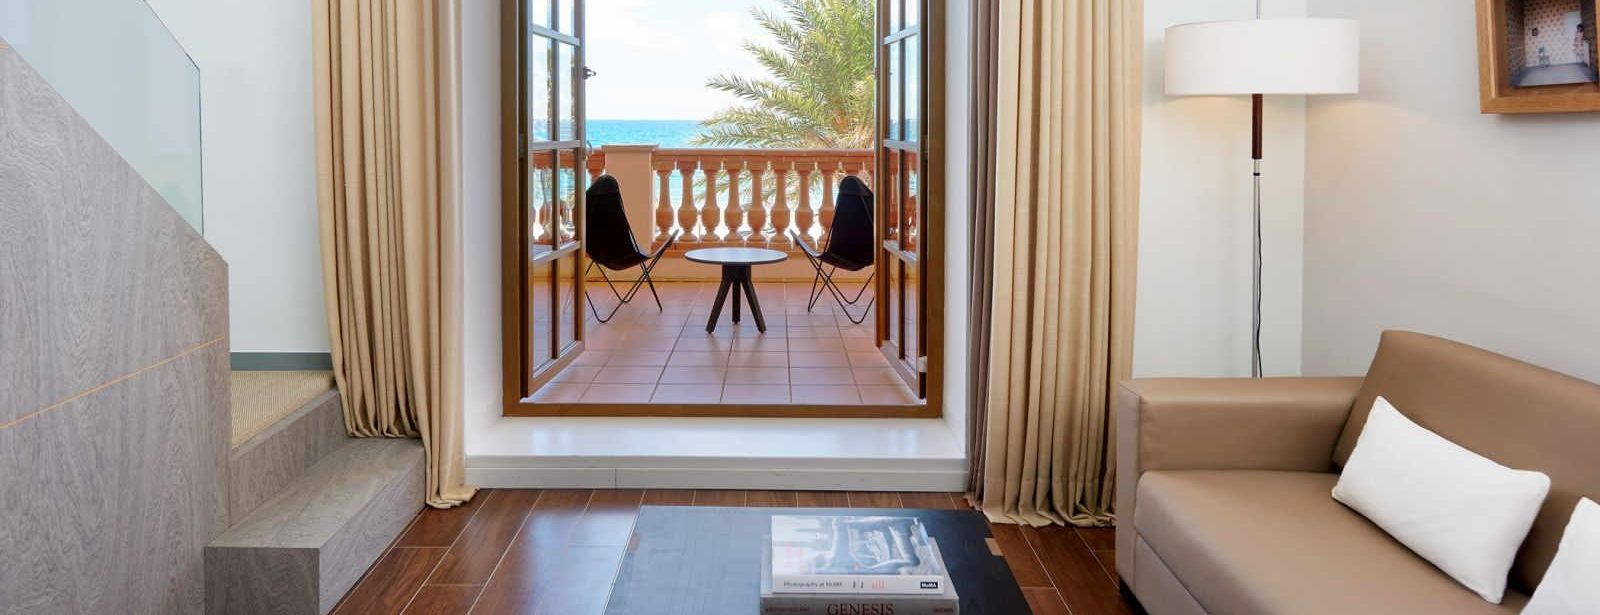 Enjoy views of the beach in our Duplex Suite at Le Méridien Ra